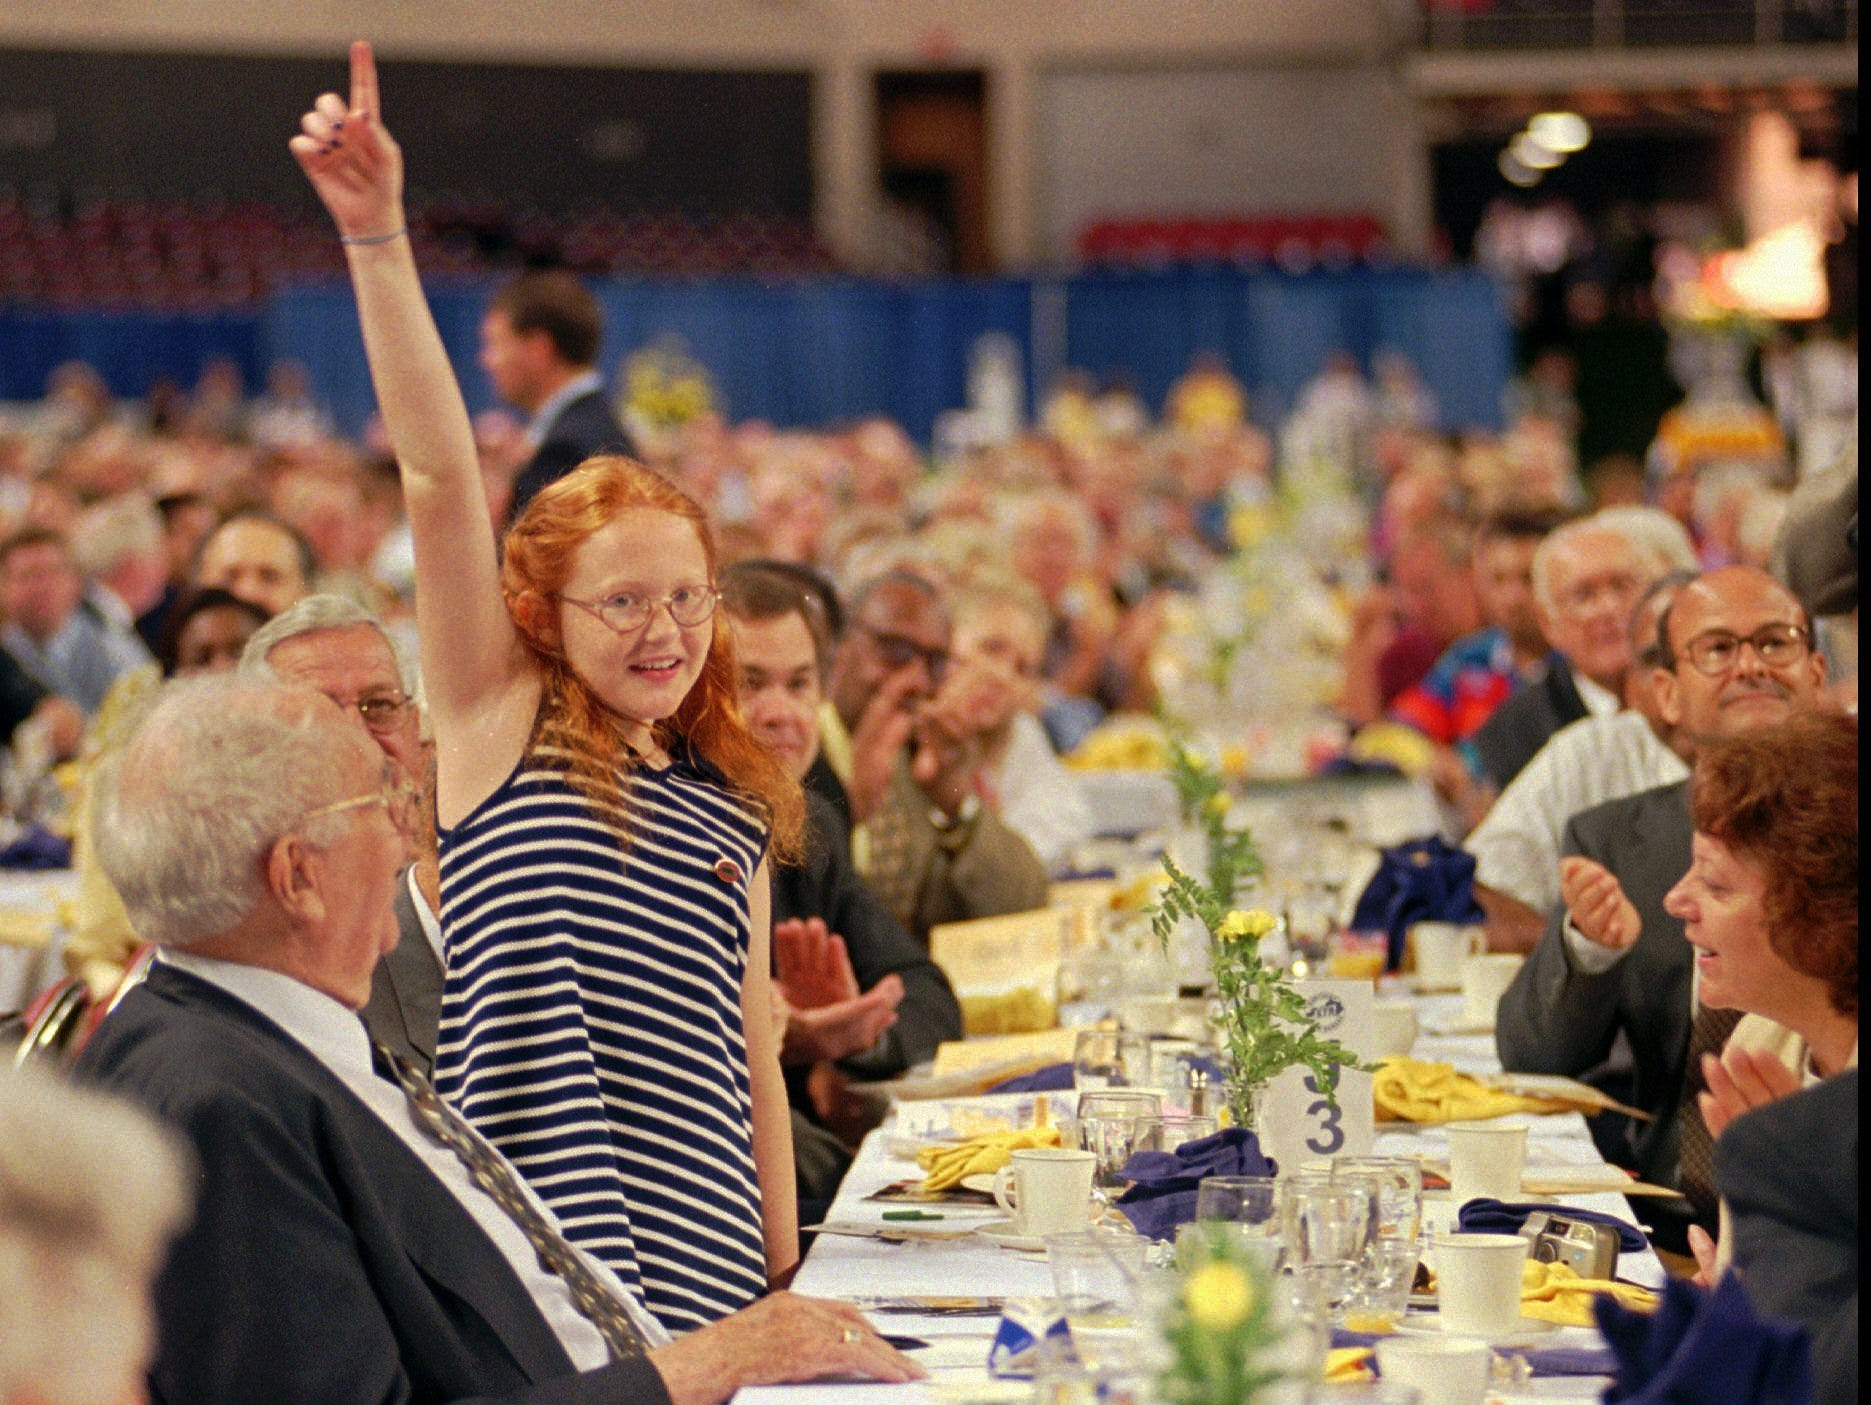 Maggie Hitron, 10, bankrolled by her grandfather, Louisville developer Al Schneider, left, cast the winning bid of $3,000 a pound for this year's grand champion ham at the 35th annual Kentucky Country Ham Breakfast in Louisville. The 15.9-pound ham was exhibited by Frank Dulin Jr. of Pembroke.-